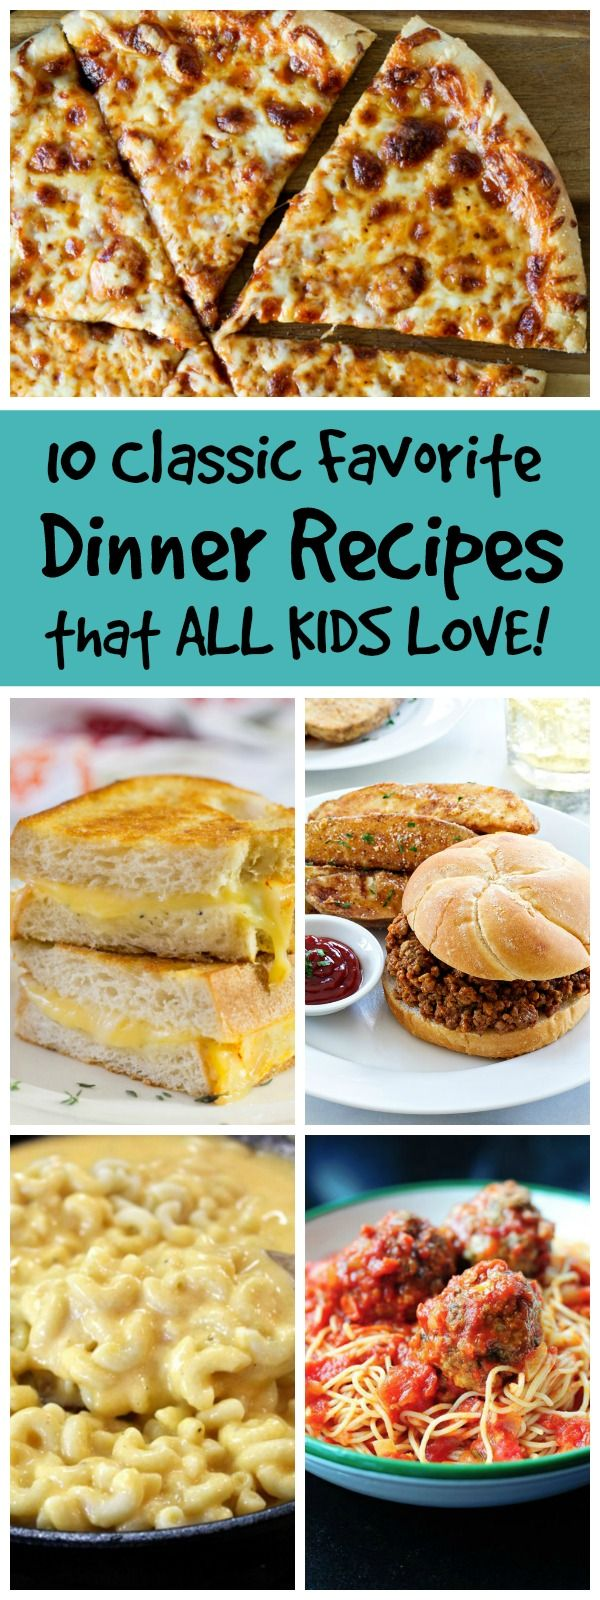 10 Classic Favorite Dinner Recipes That All Kids Love